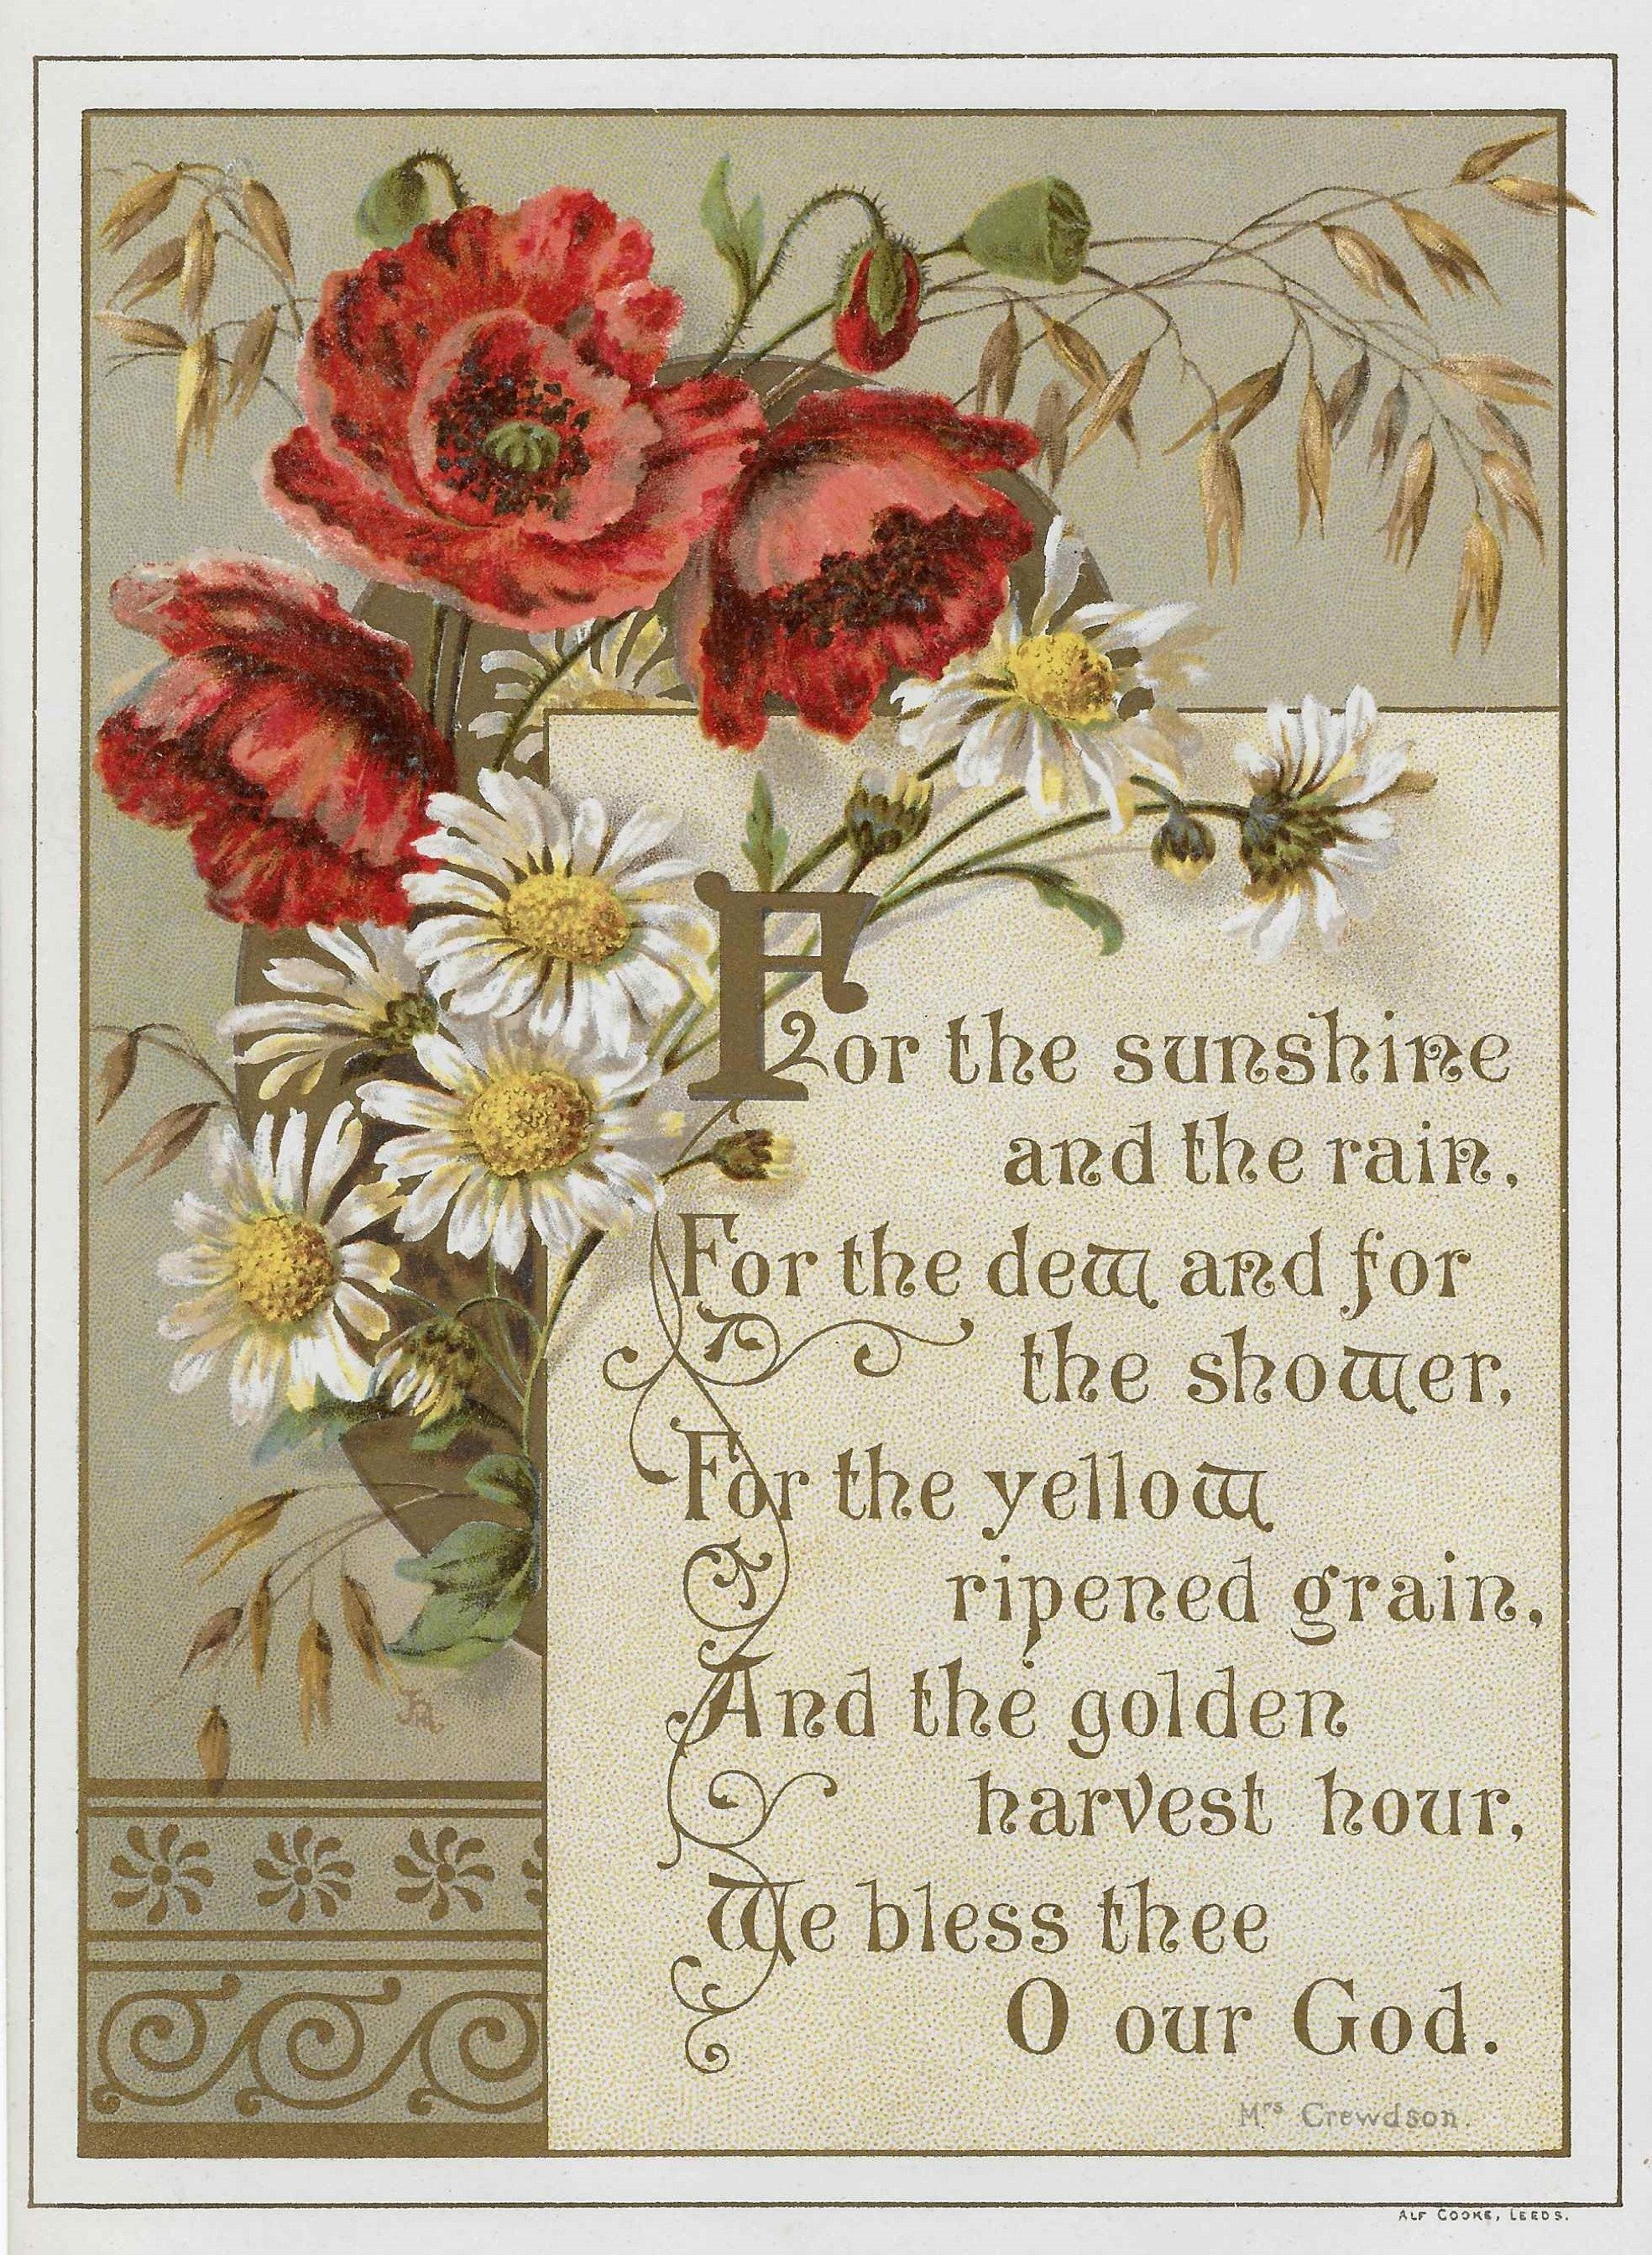 Learn The Victorian Meaning Of Flowers Free Vintage Printables Adirondack Girl Heart Free Vintage Printables Language Of Flowers Flower Meanings